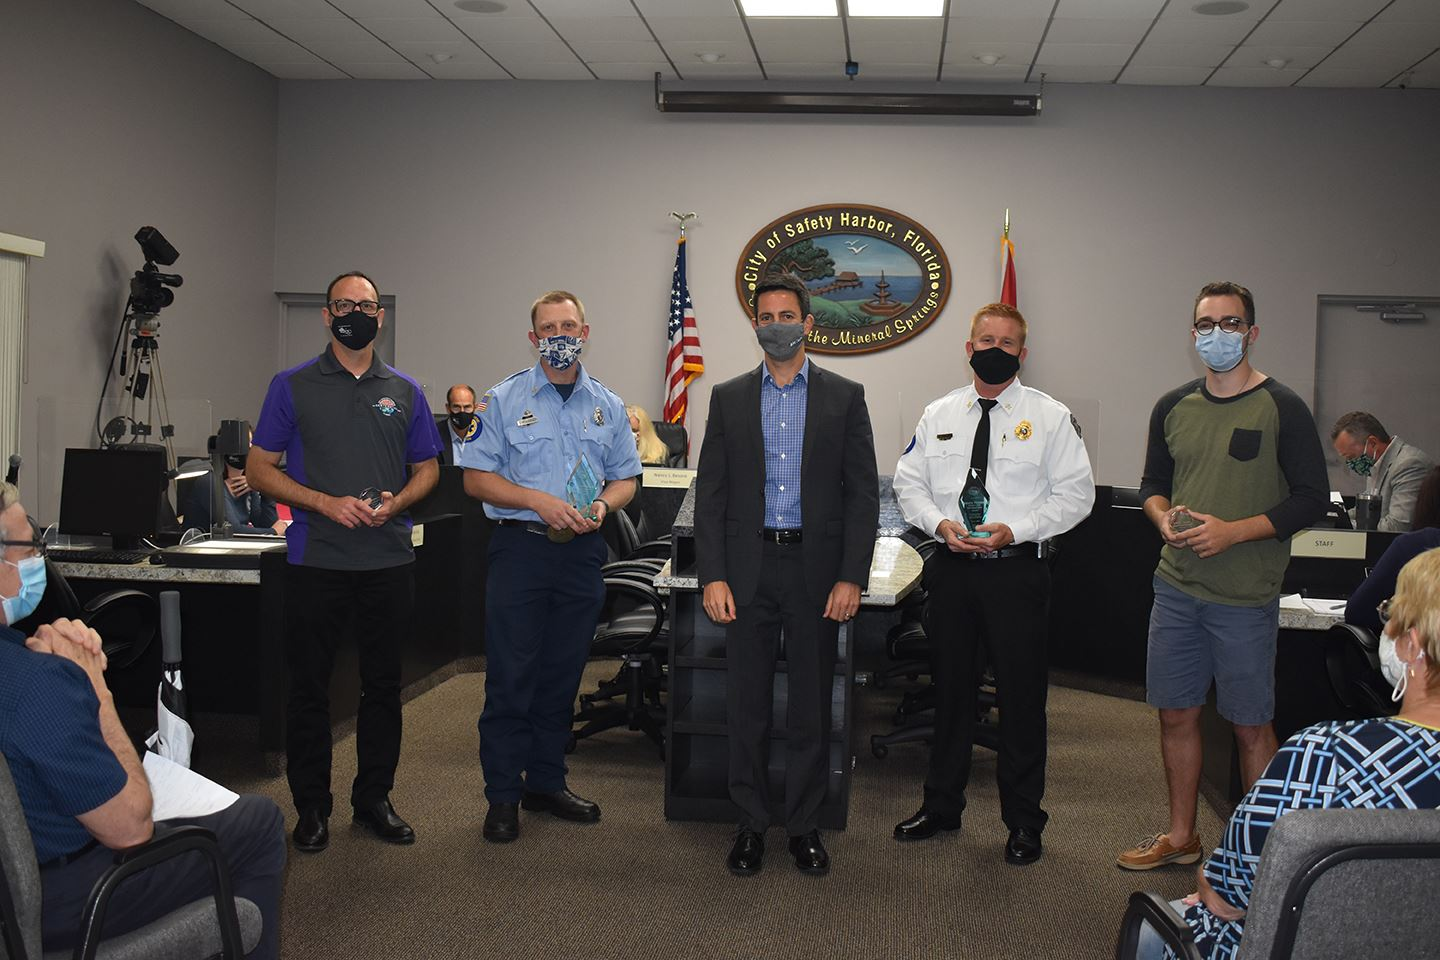 City of Safety Harbor Employees recognized at Commission meeting for years of service